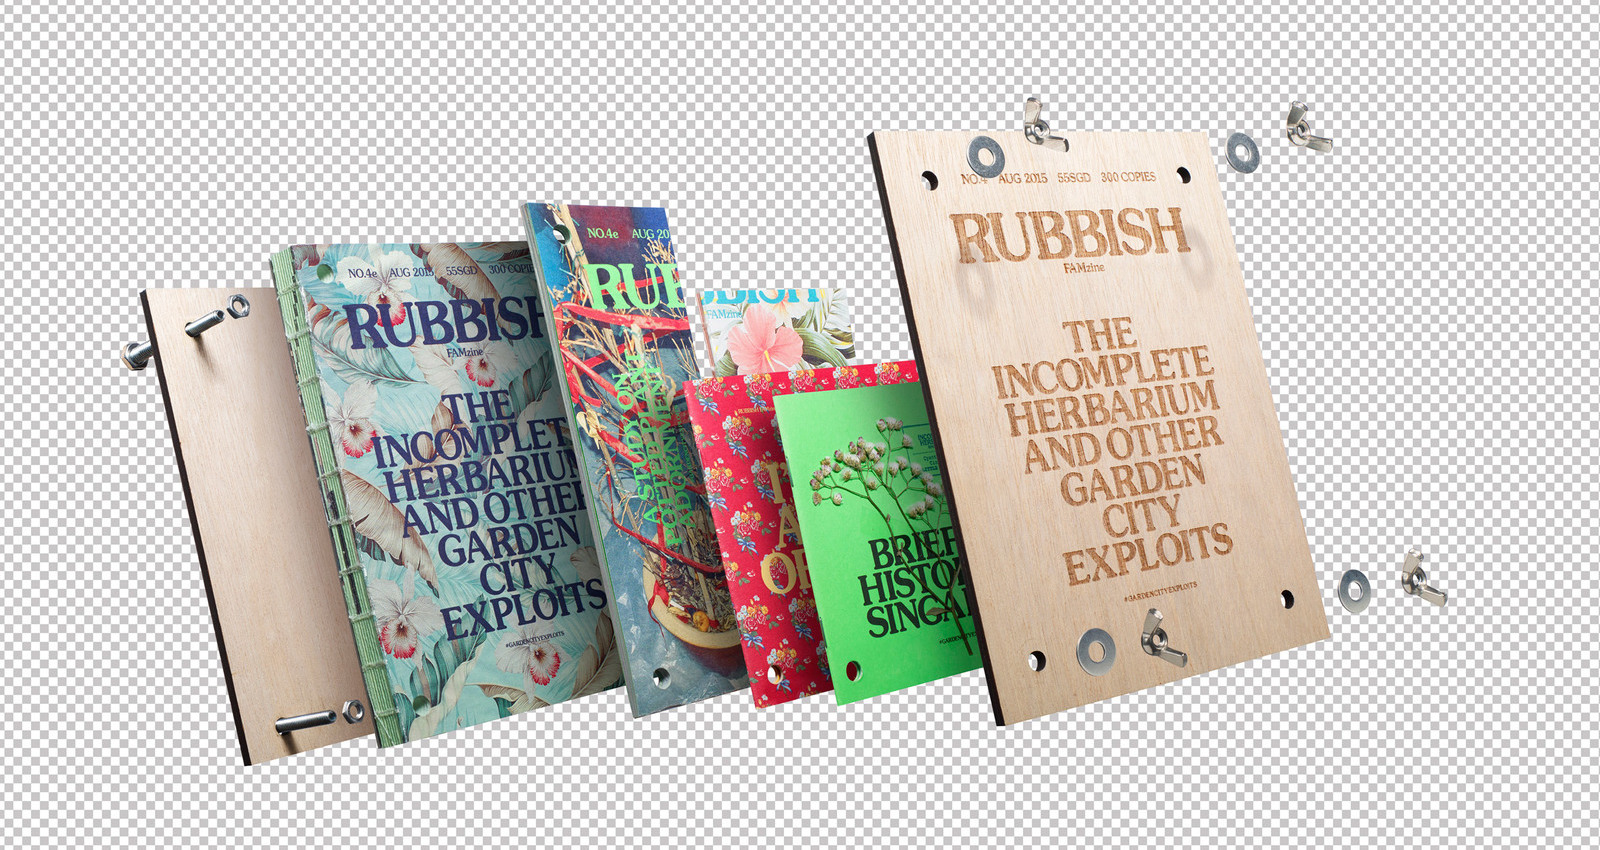 Rubbish Famzine- The Incomplete Herbarium and other Garden CIty Exploits